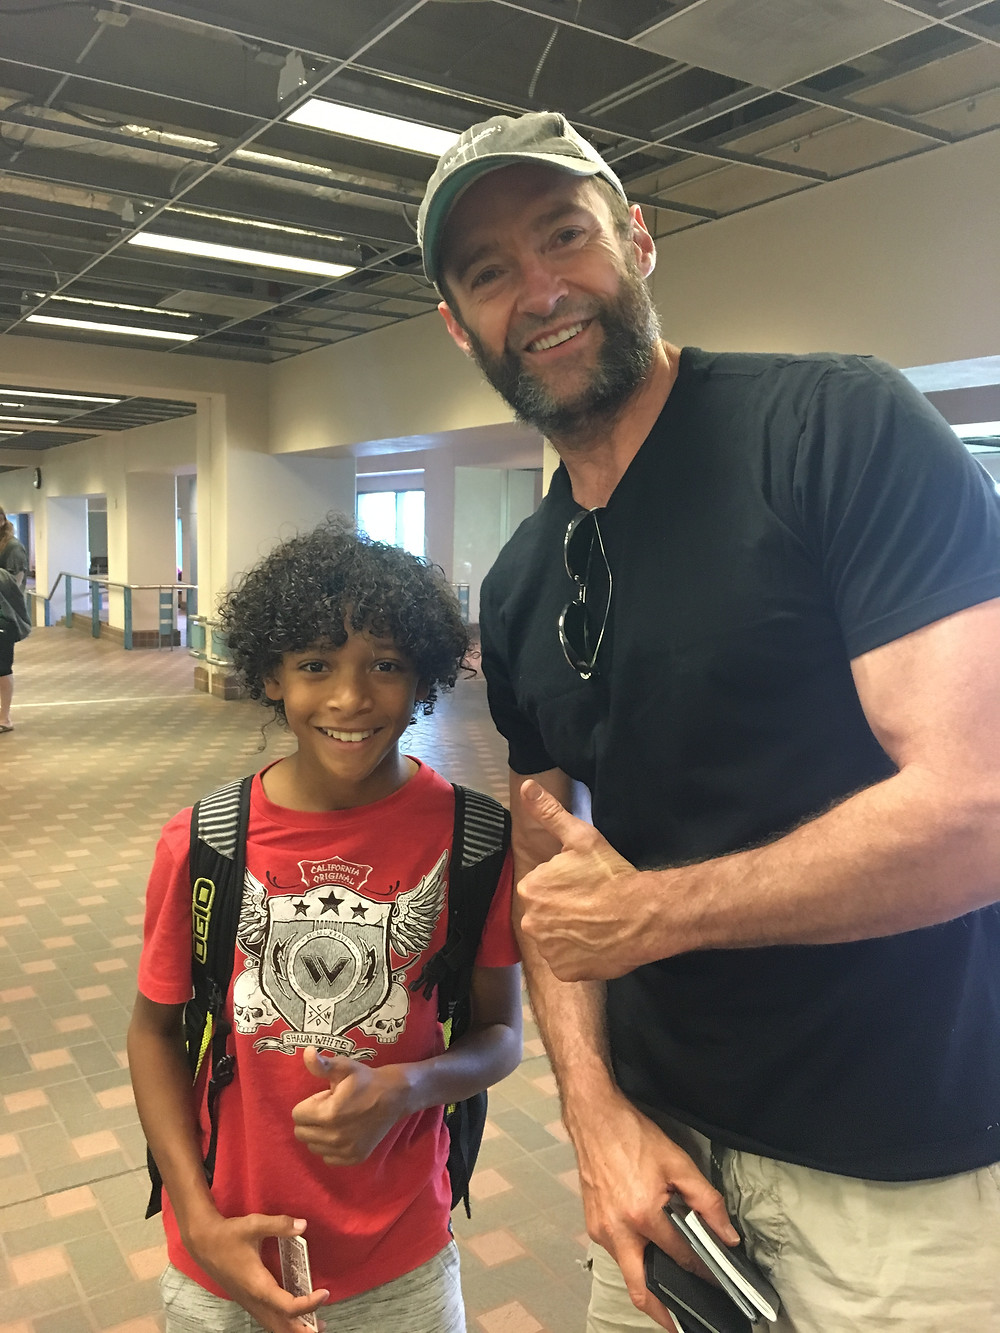 On one of the journeys home, Jackman spotted Chase in the airport!!